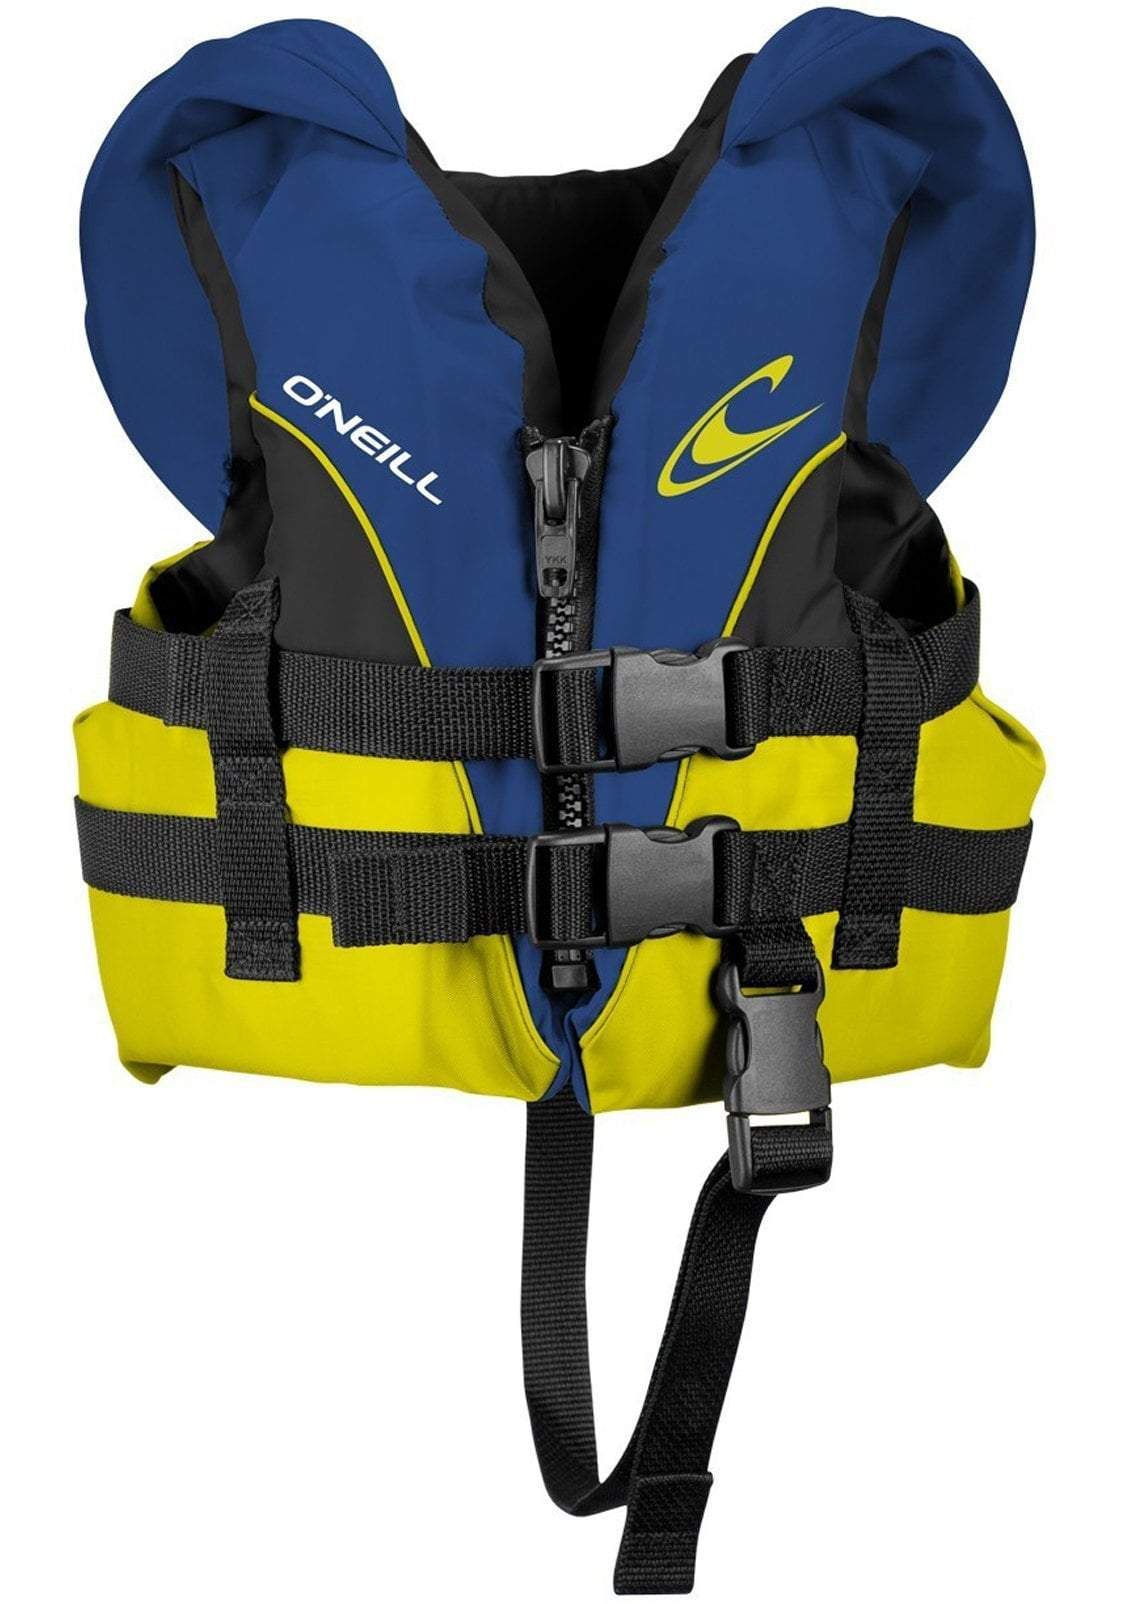 O'Neill's Infant Superlite USCG Vest